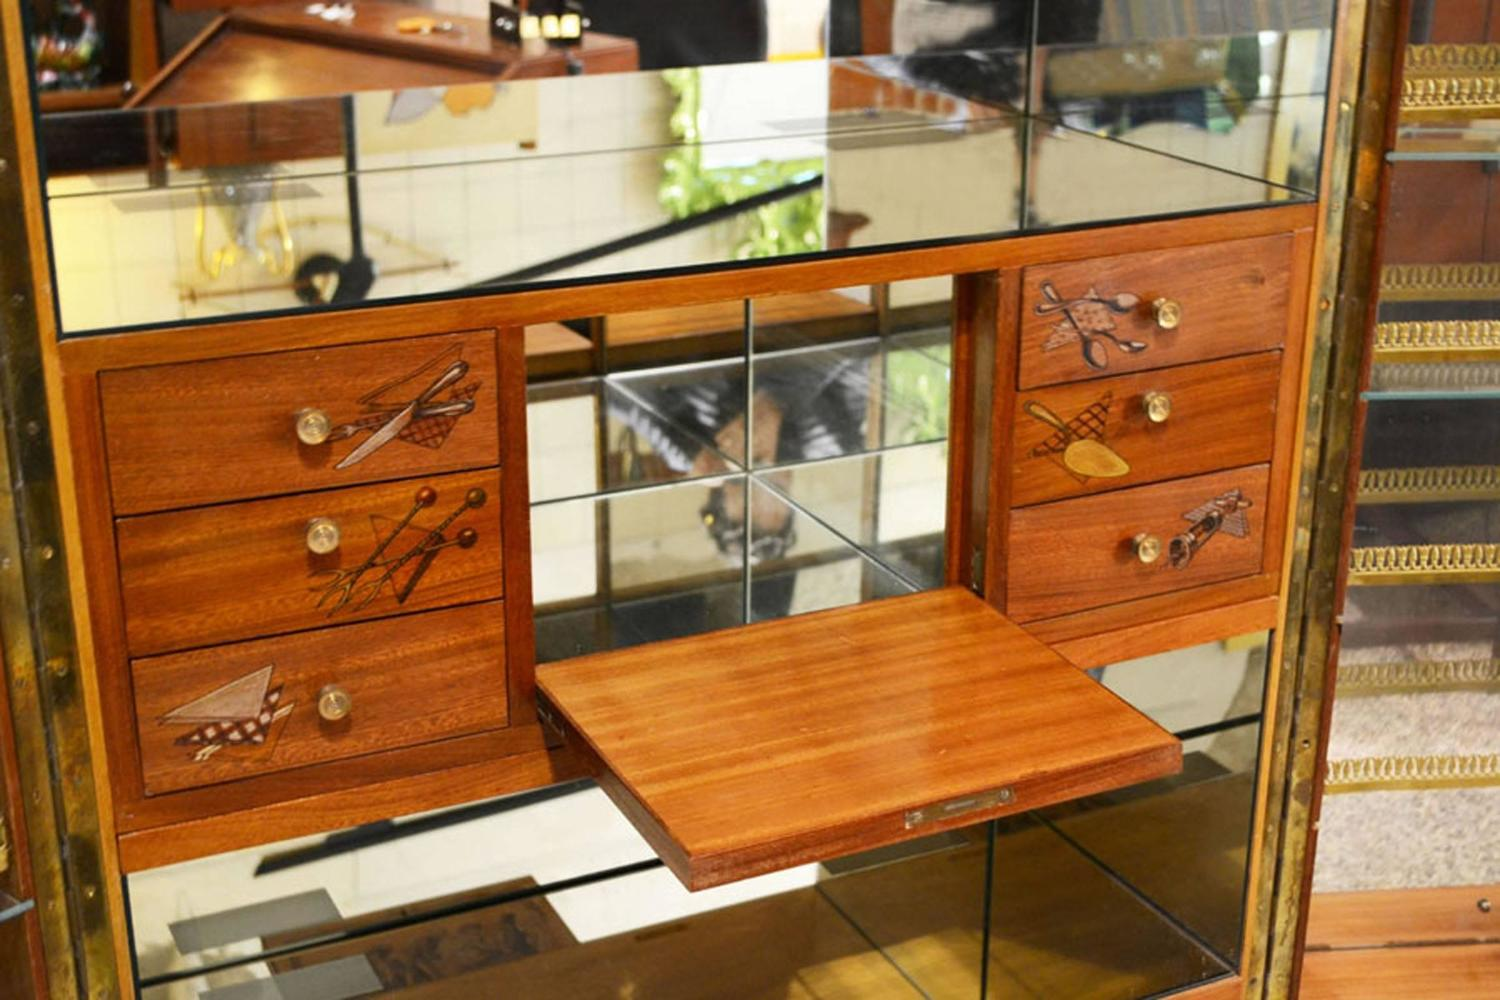 1940s wooden bar cabinet on wheels internally lighted and for 1940s kitchen cabinets for sale